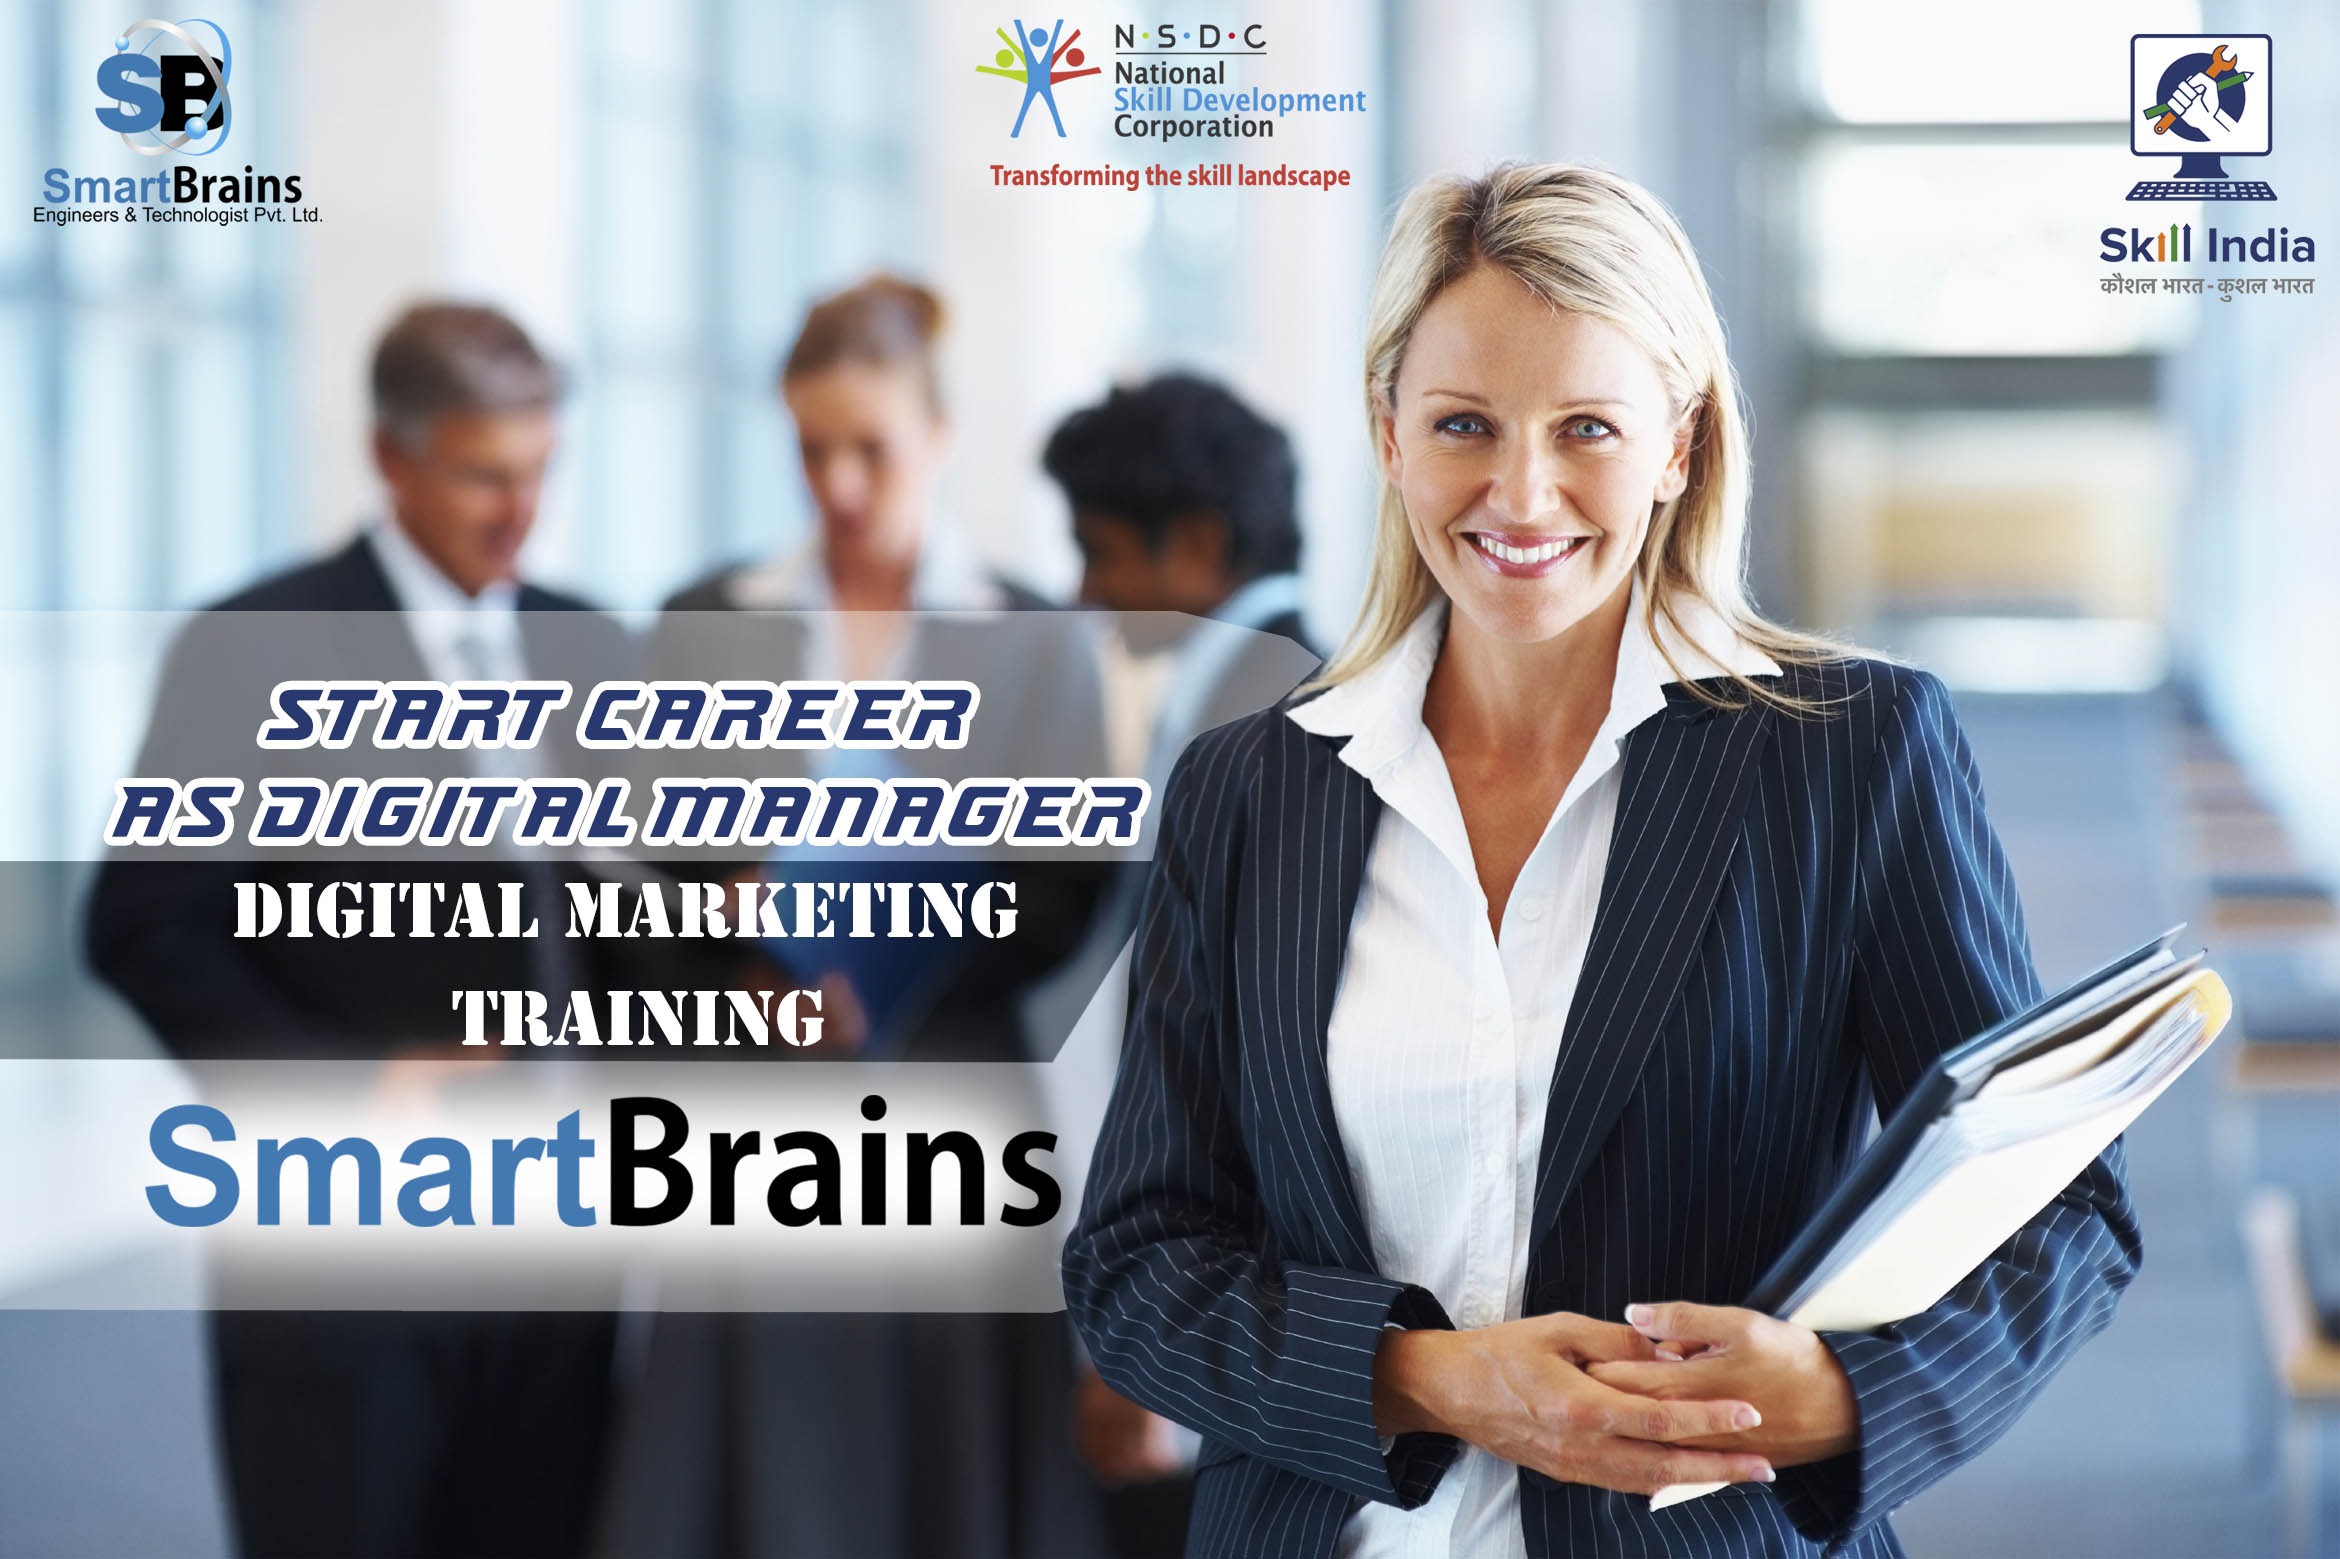 Smart Brains Institute of Engineering Design Research in Sector 63